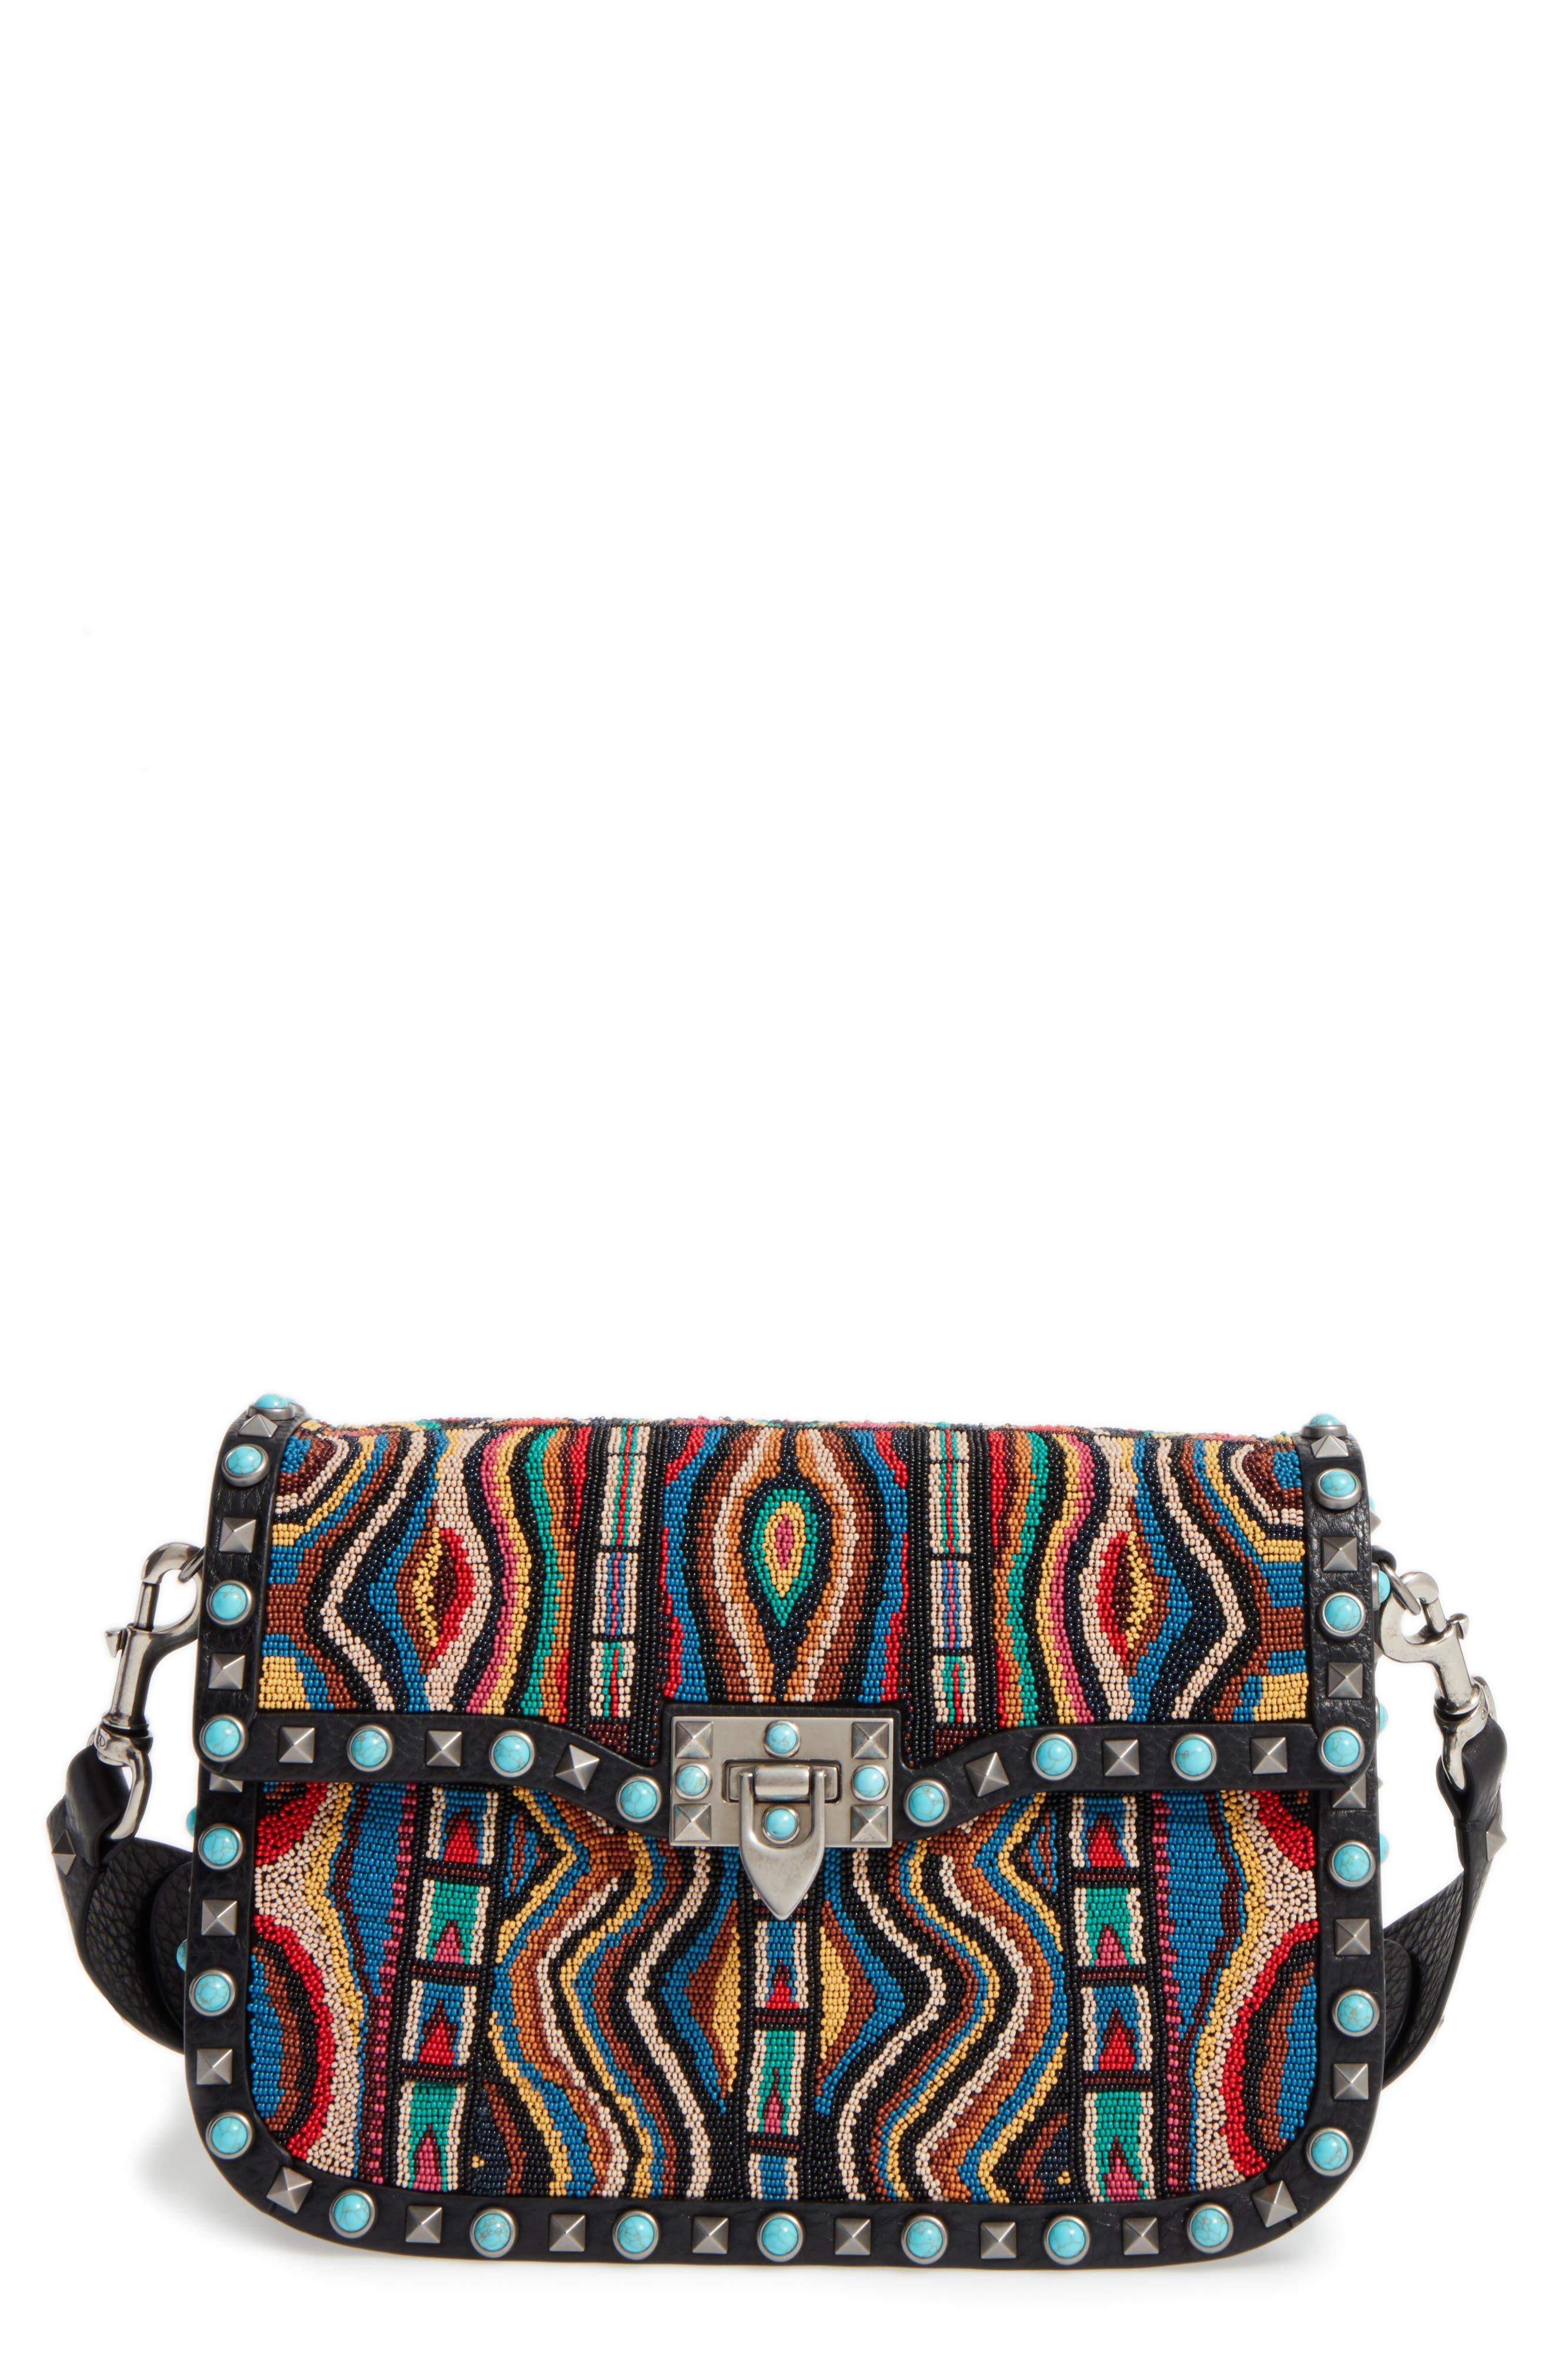 Valentino Rockstud Rolling Beaded Shoulder Bag with Embroidered Guitar Strap, Main, color, 001